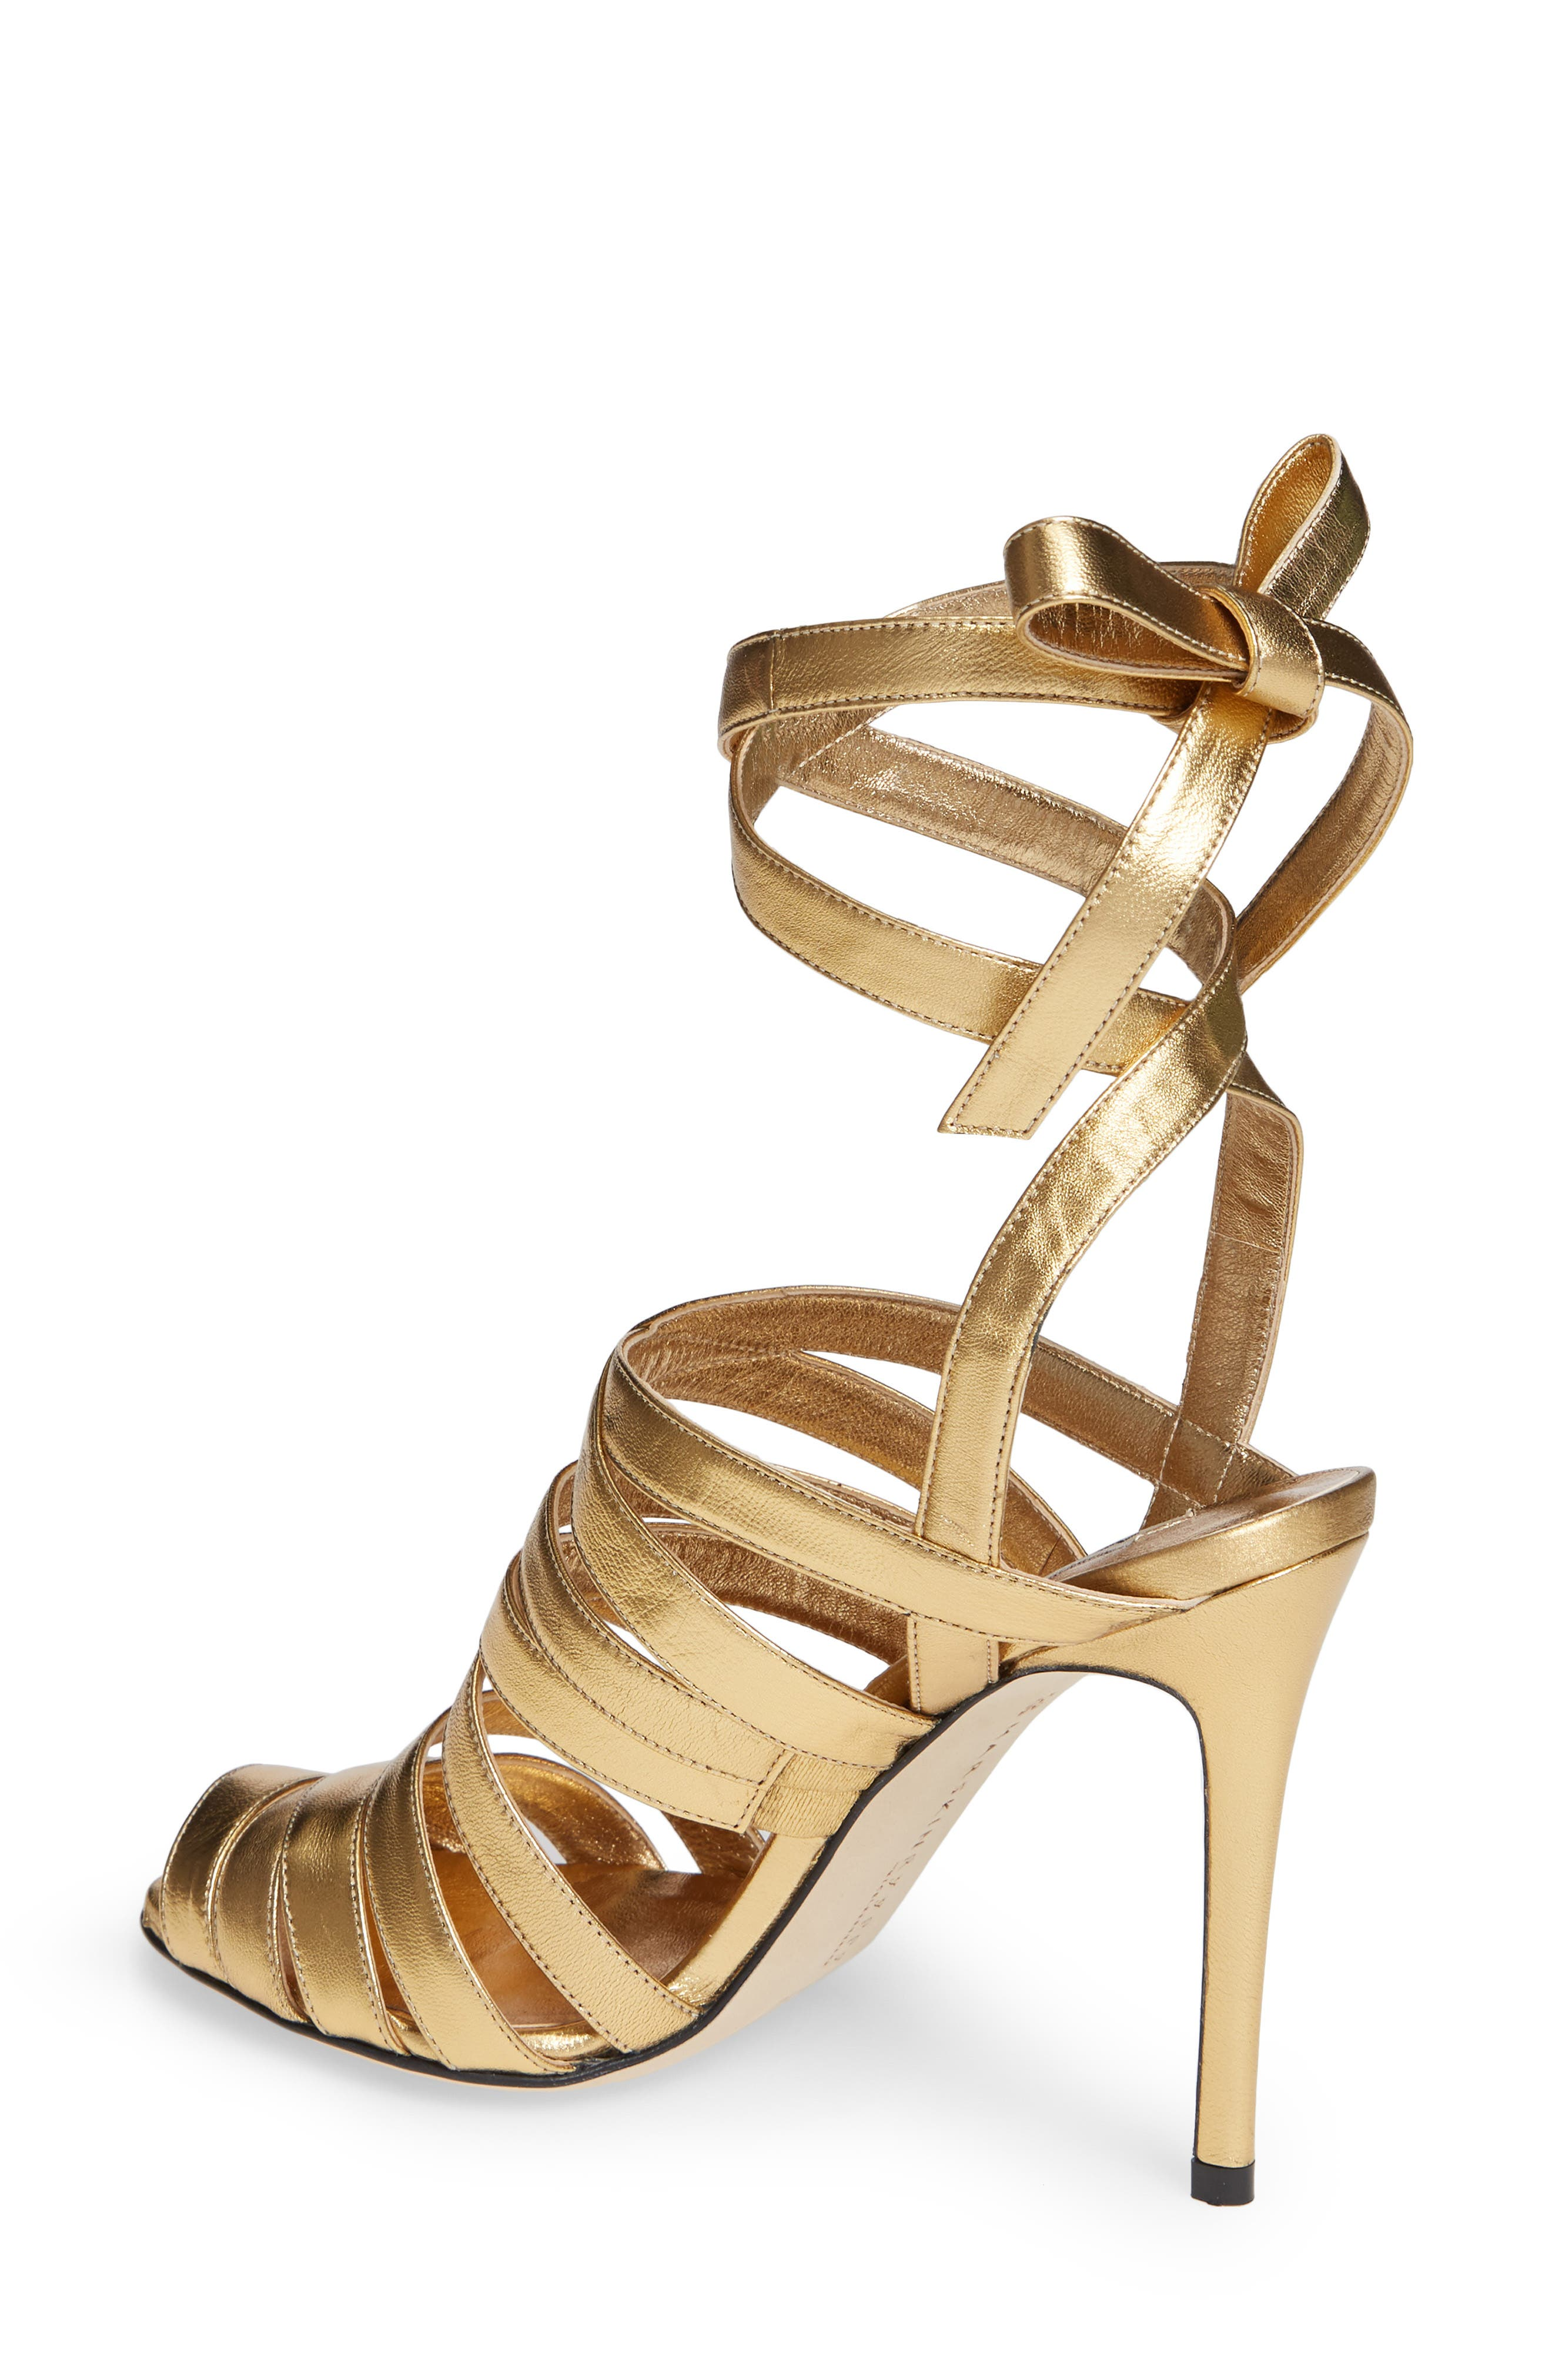 Nadege Strappy Pump,                             Alternate thumbnail 2, color,                             GOLD LEATHER